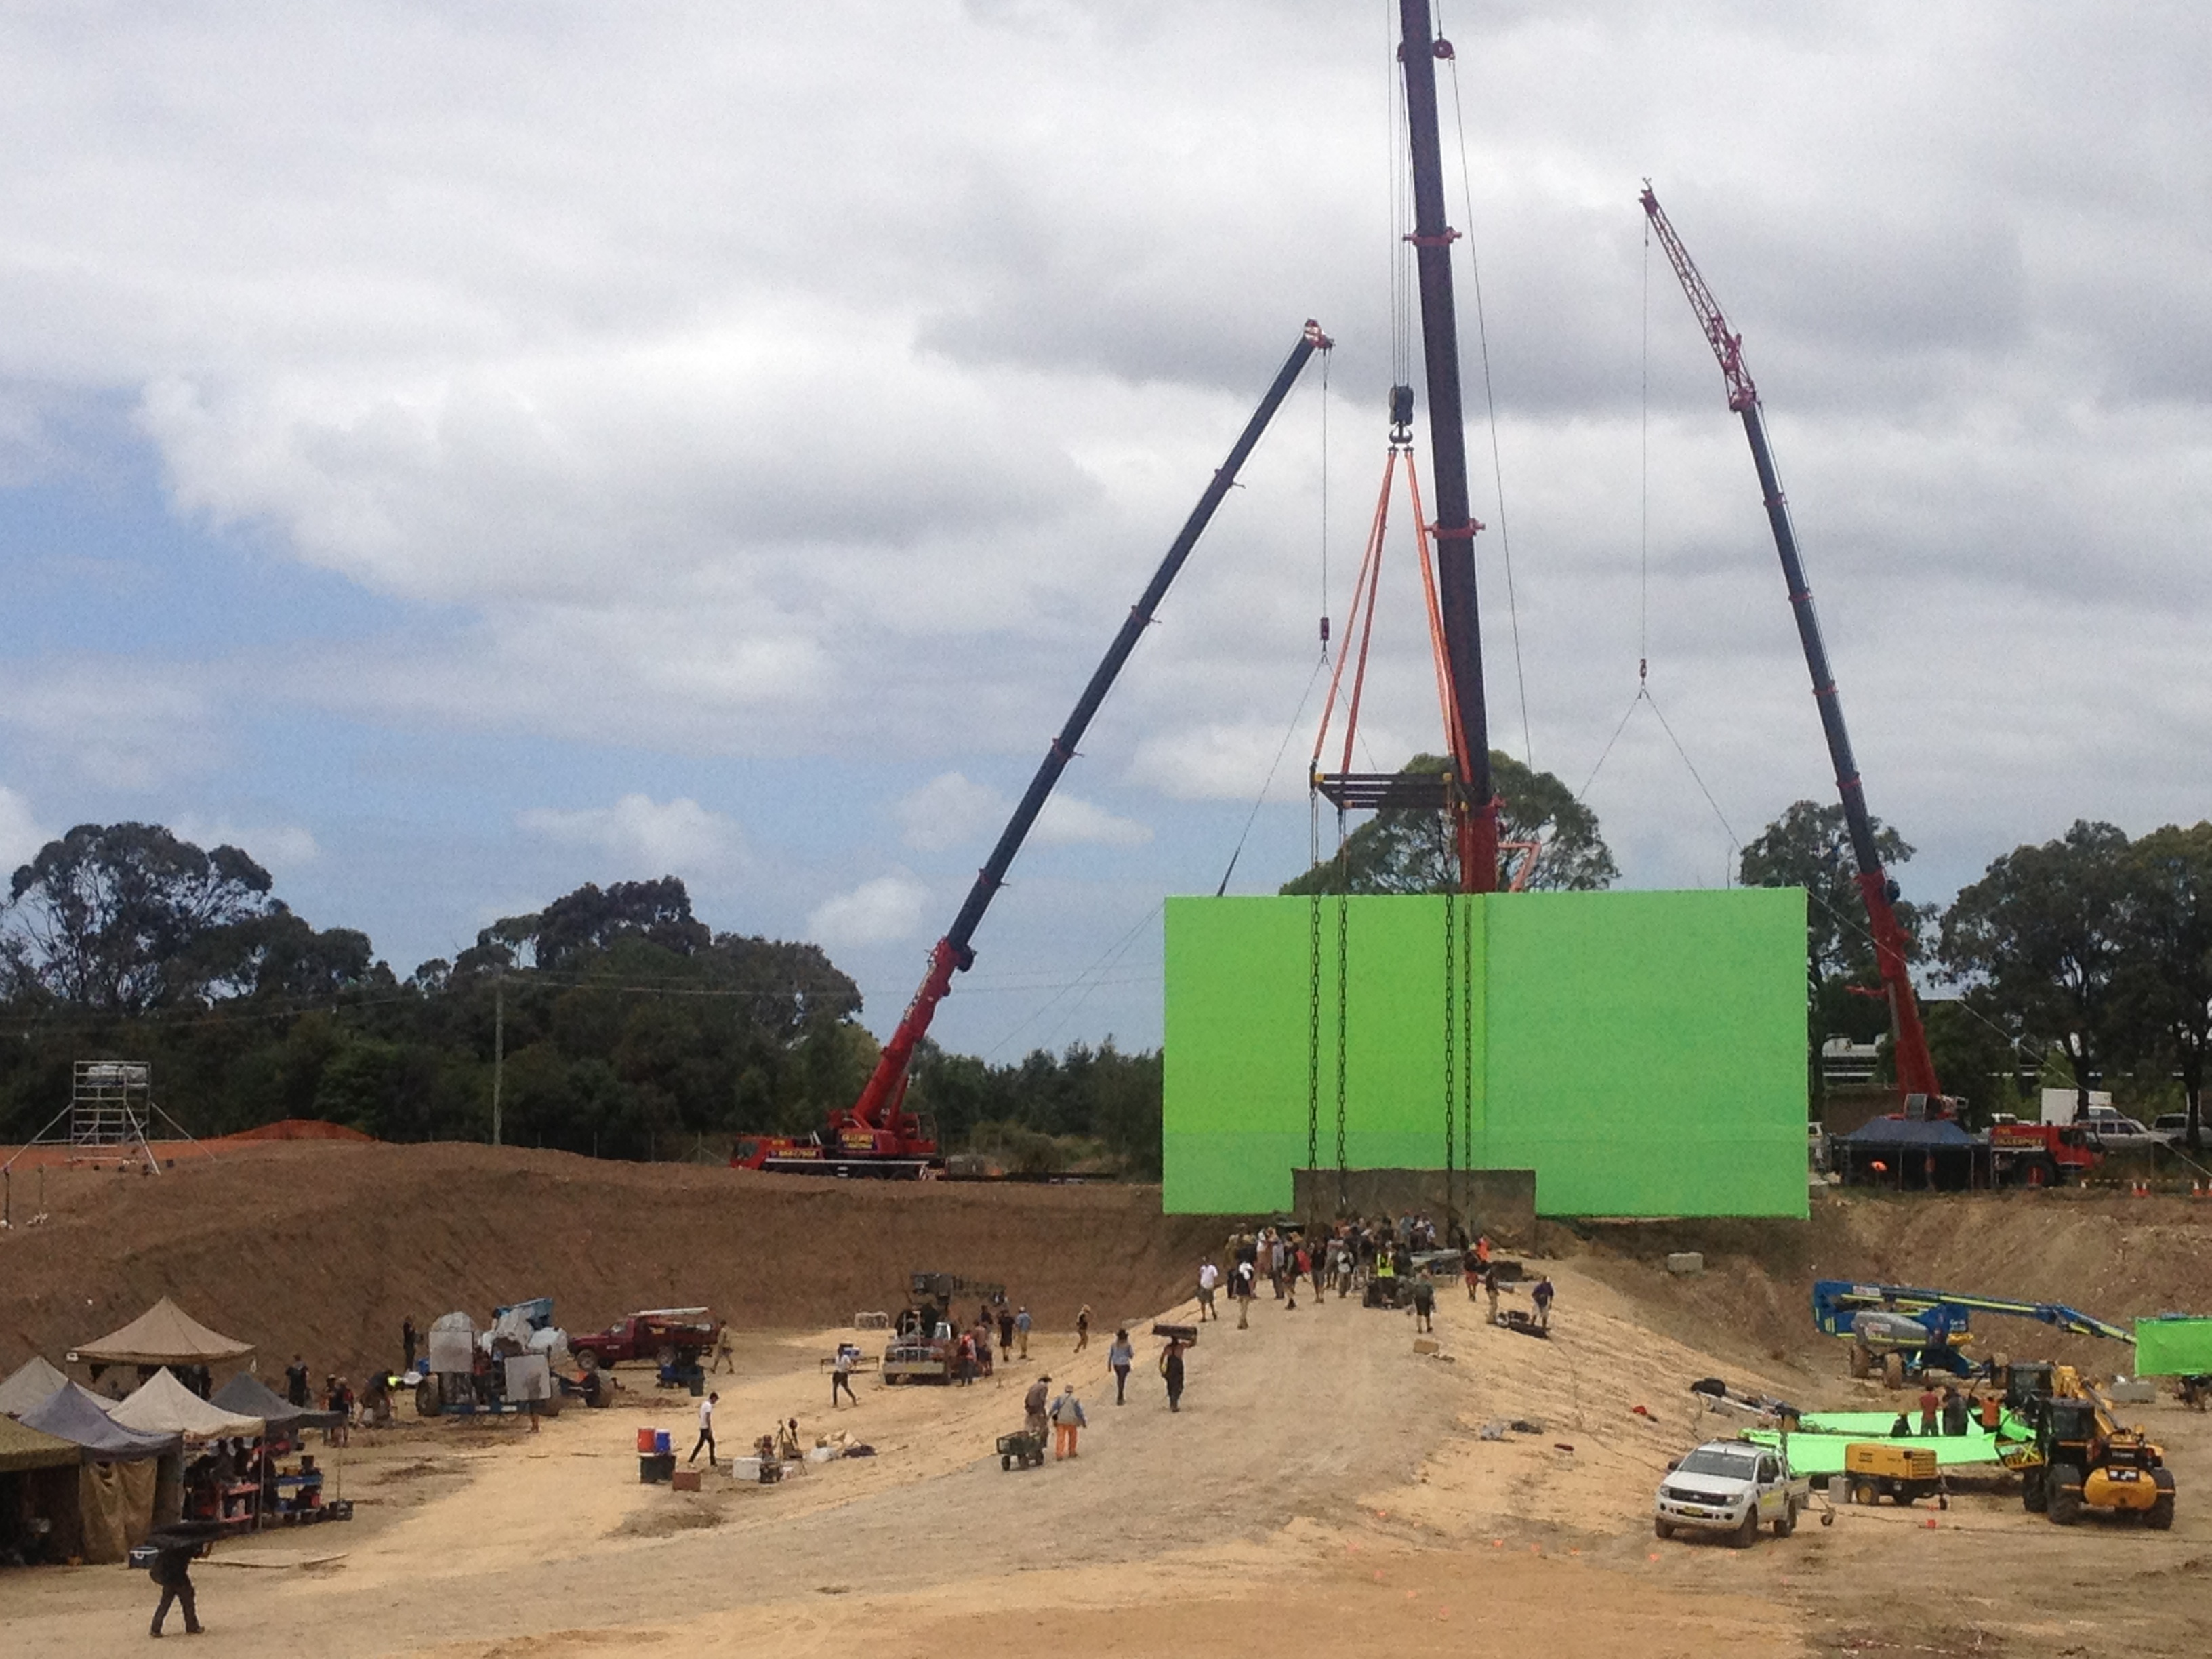 2 of 40' x 40' Screens with Box Truss Frames, flown by cranes.